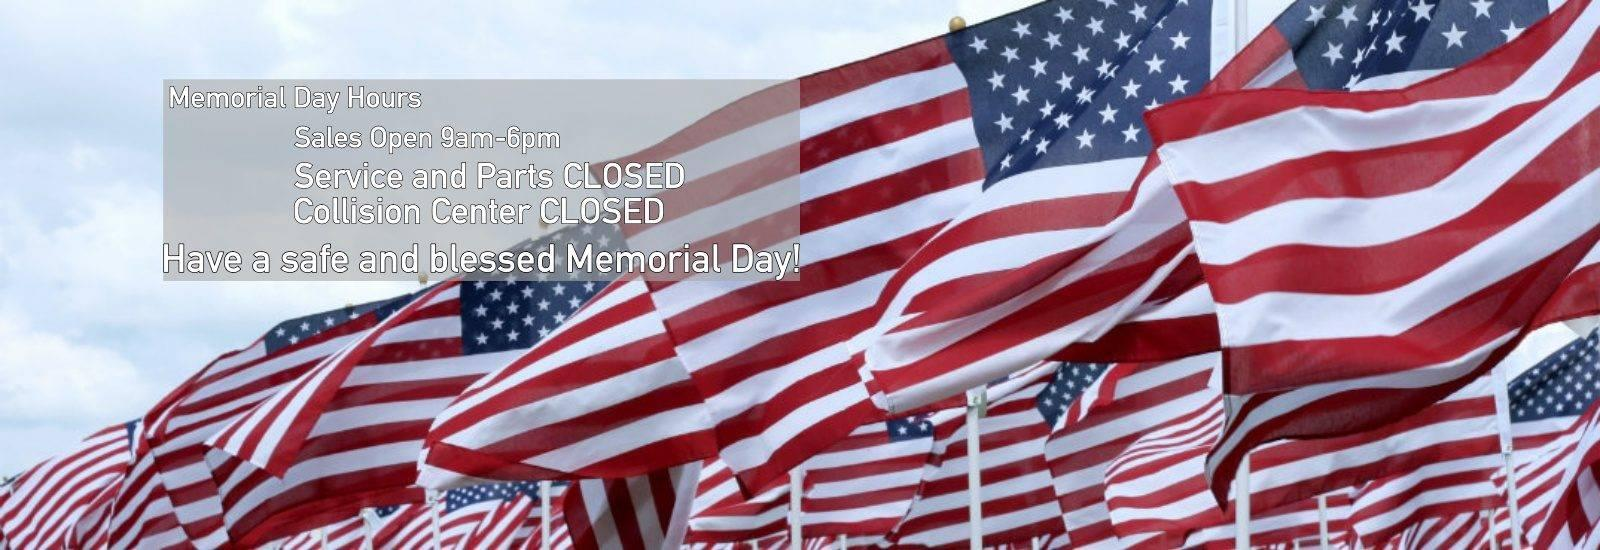 Skillman West Memorial Day Hours